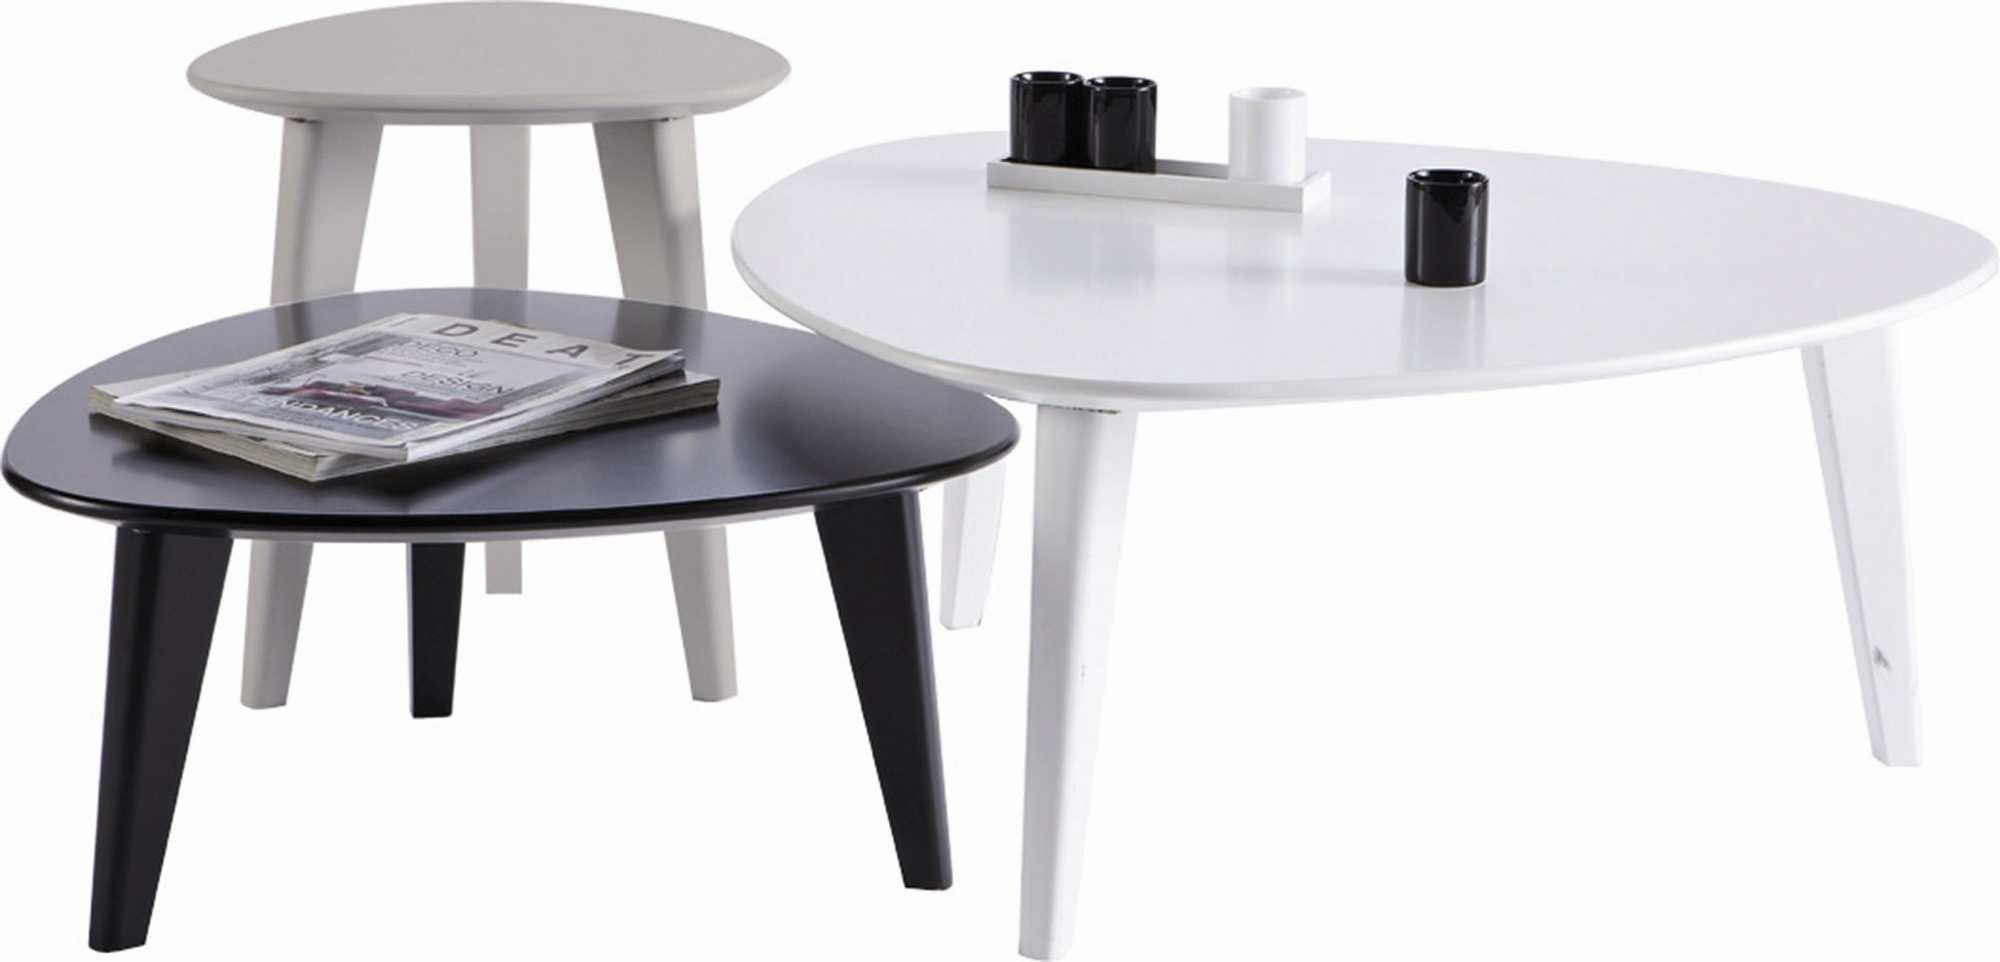 Table Basse Design Ronde Pas Cher Atwebsterfr Maison Et Mobilier